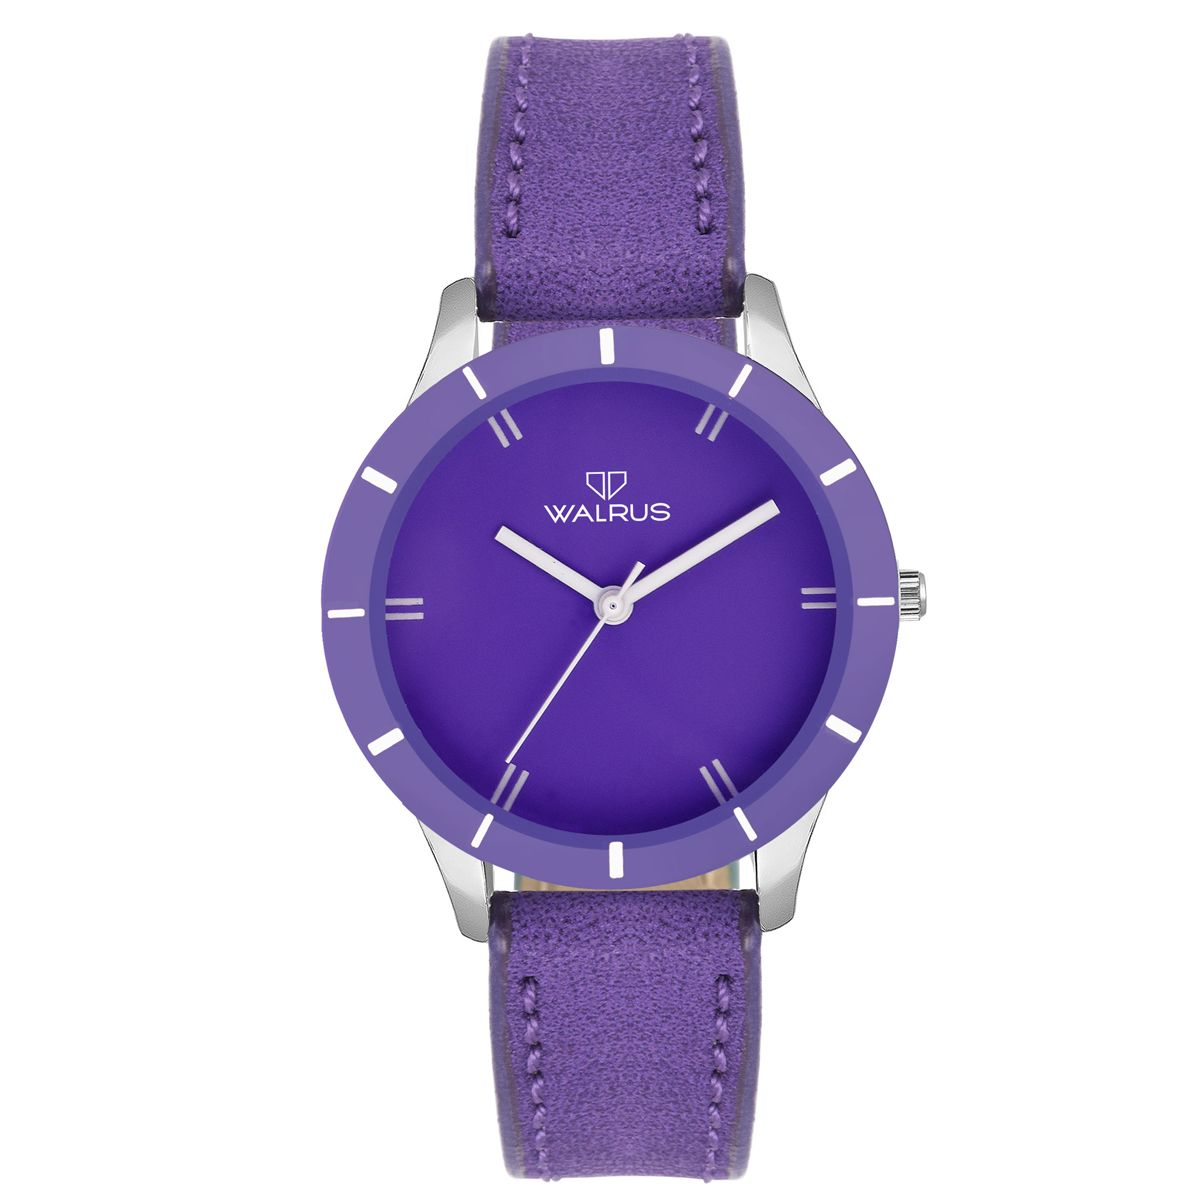 Walrus Eve Purple Color Analog Women Watch -WWW-Eve -141407